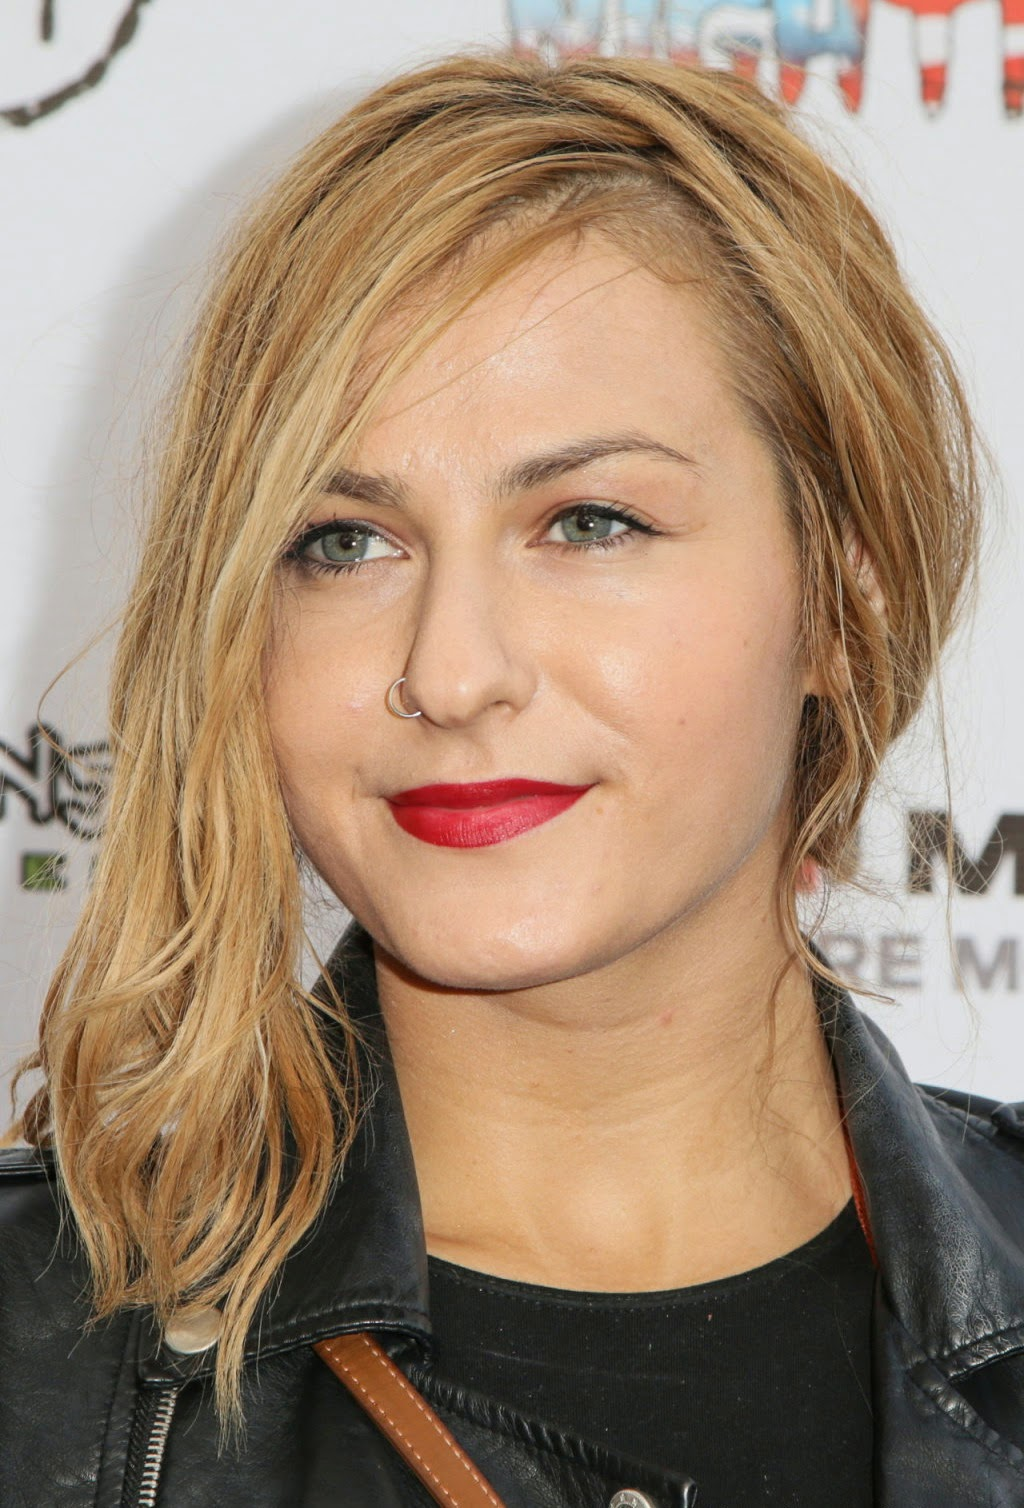 All business. Scout taylor compton nake pic remarkable